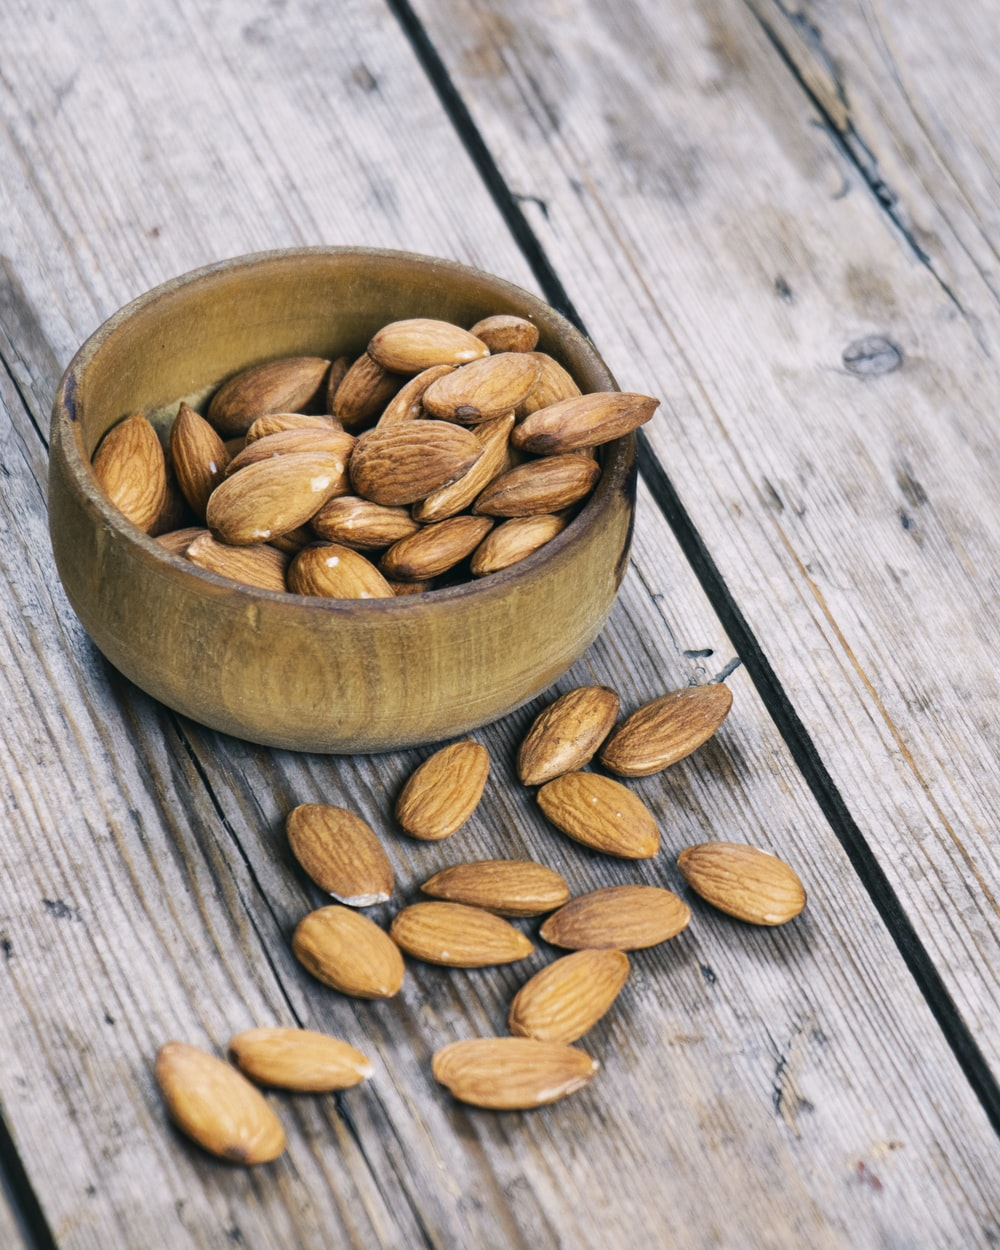 almond nuts in bowl and on table